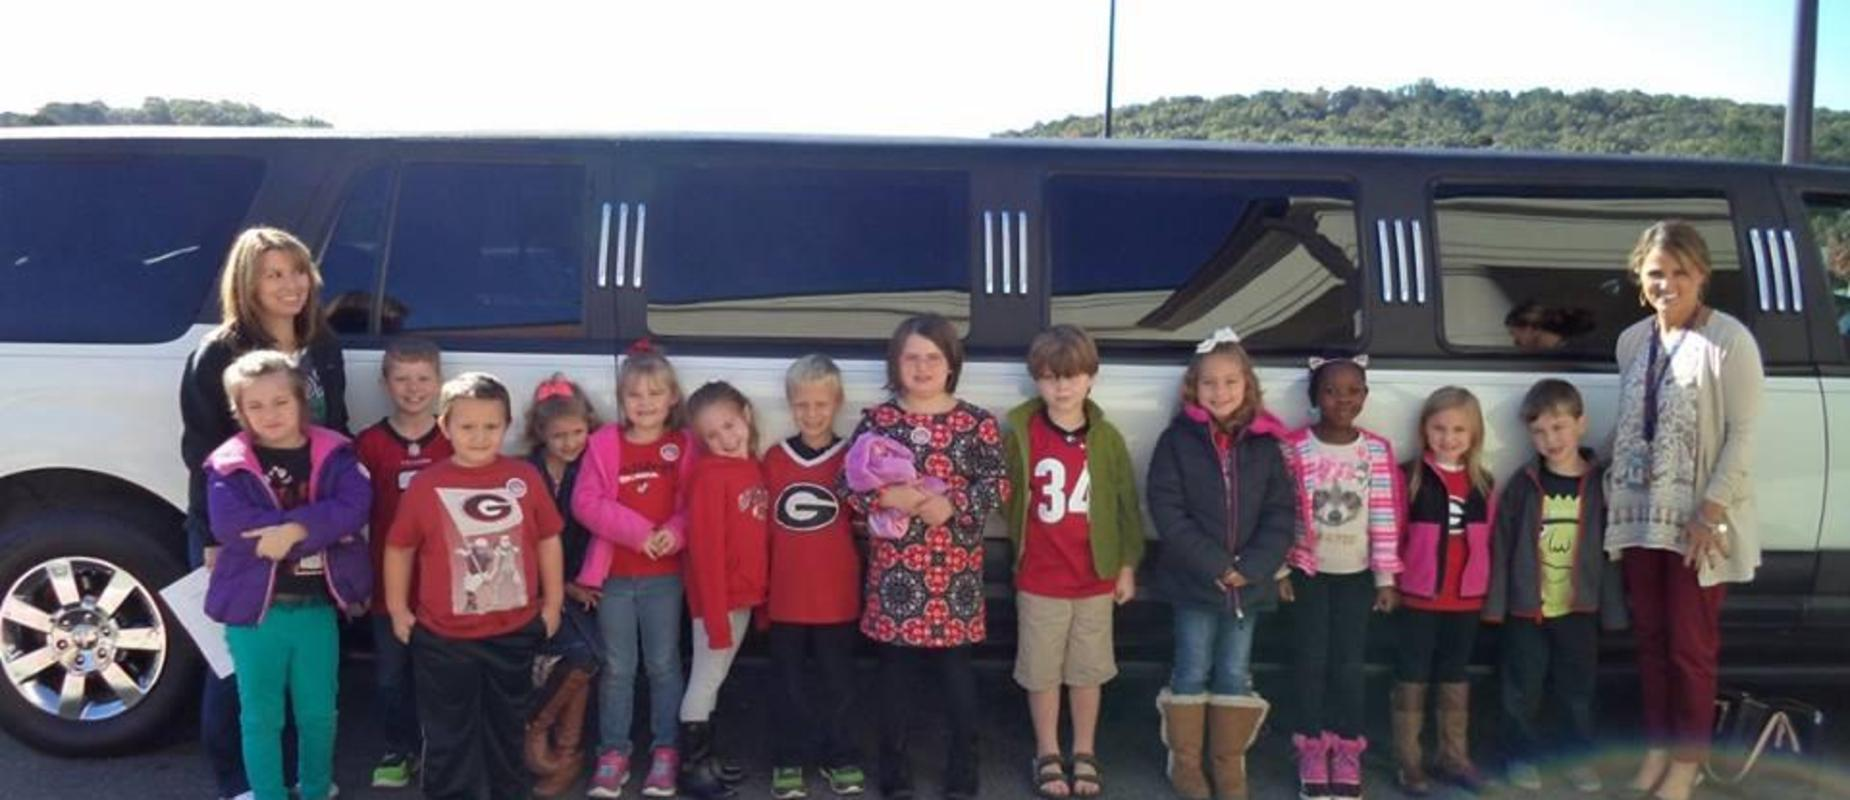 Fundraiser limo Ride